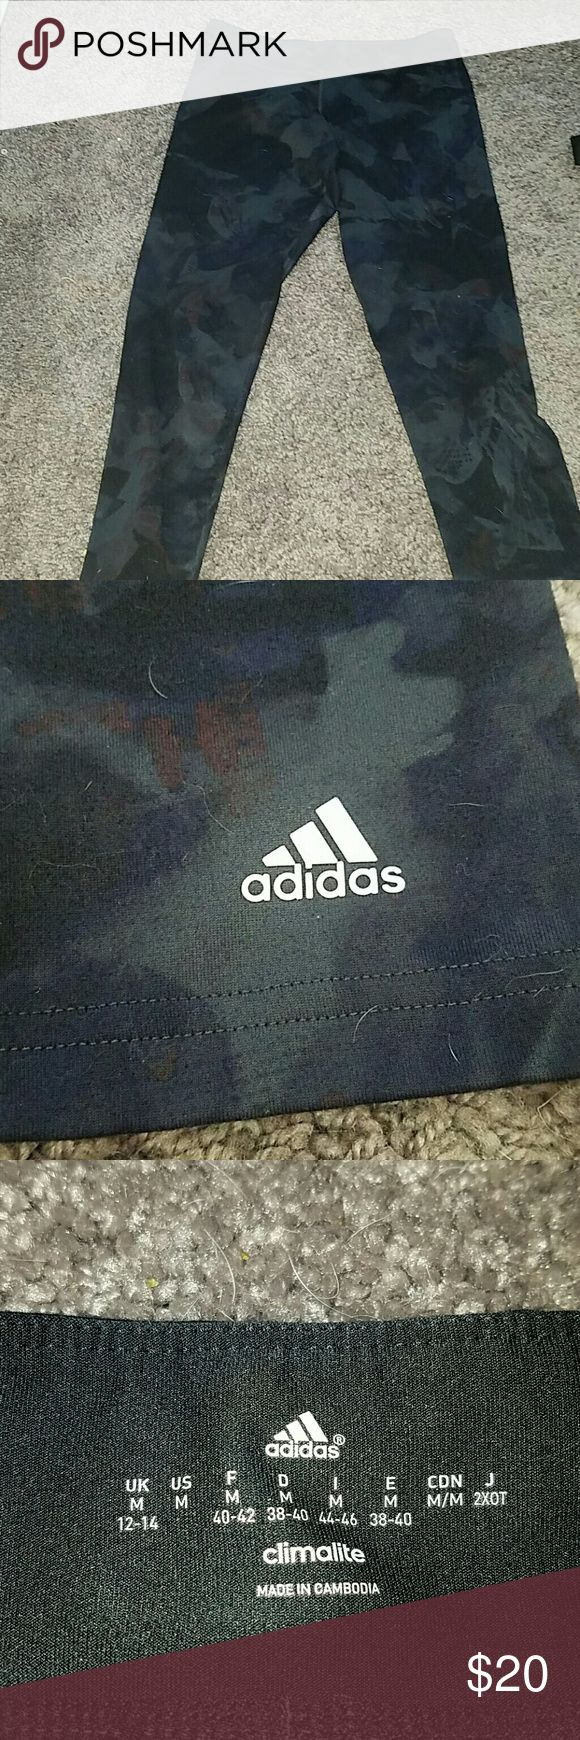 Black Adidas Camouflage leggings They have only been worn a few times but they are still in pretty good condition. They are to small for me and that is why I'm getting rid of them. The price is not set in stone Adidas Pants Leggings